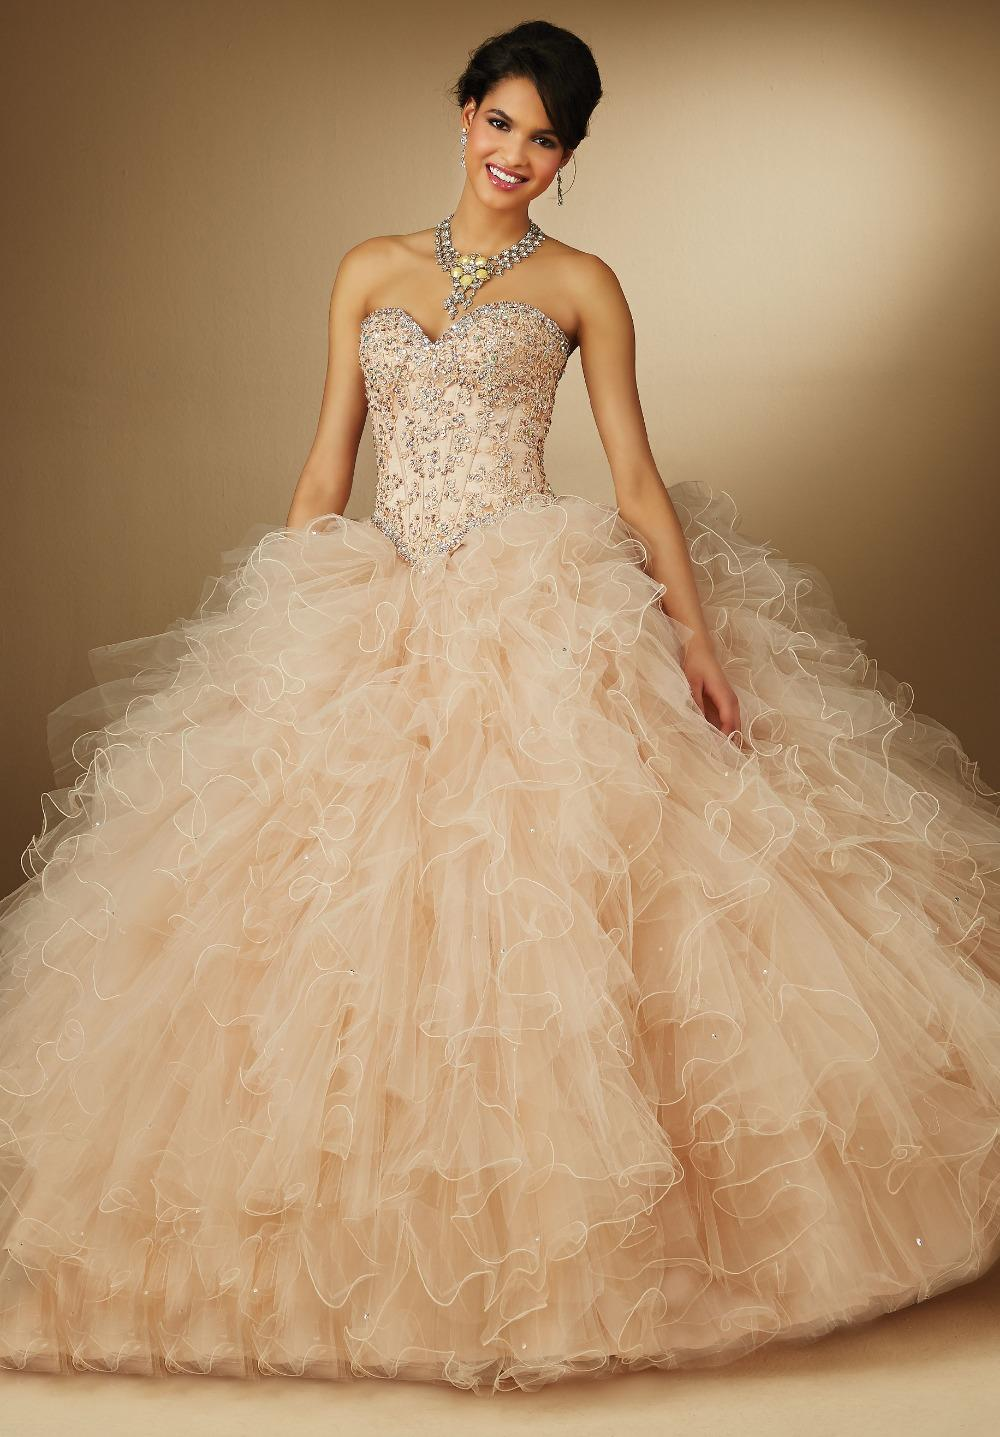 Strapless Beaded Lace Top Ball Gown Ruffles Skirt Champagne Prom ...